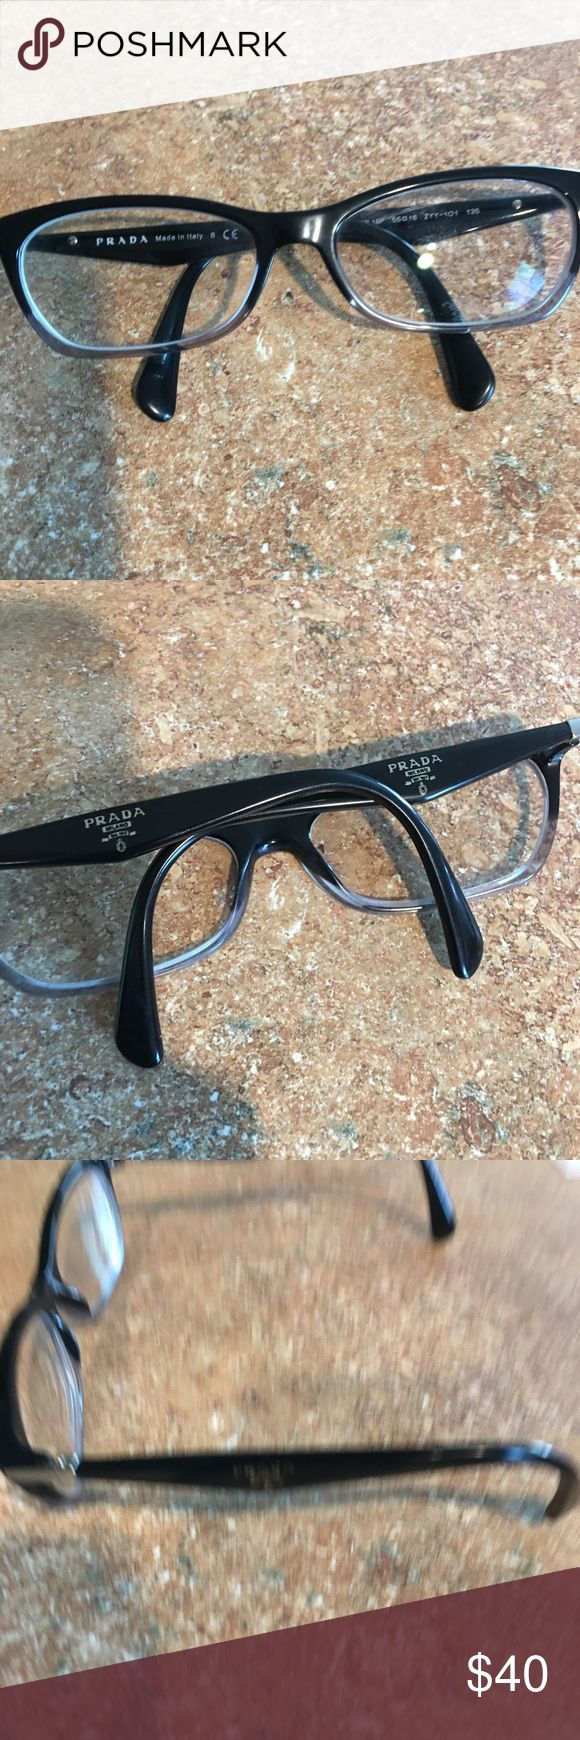 Prada prescription glasses frame Good condition ; has it for a year and changed glasses ; you just need to bring it to the optical office and replace the lenses with your prescription in there prada Accessories Glasses